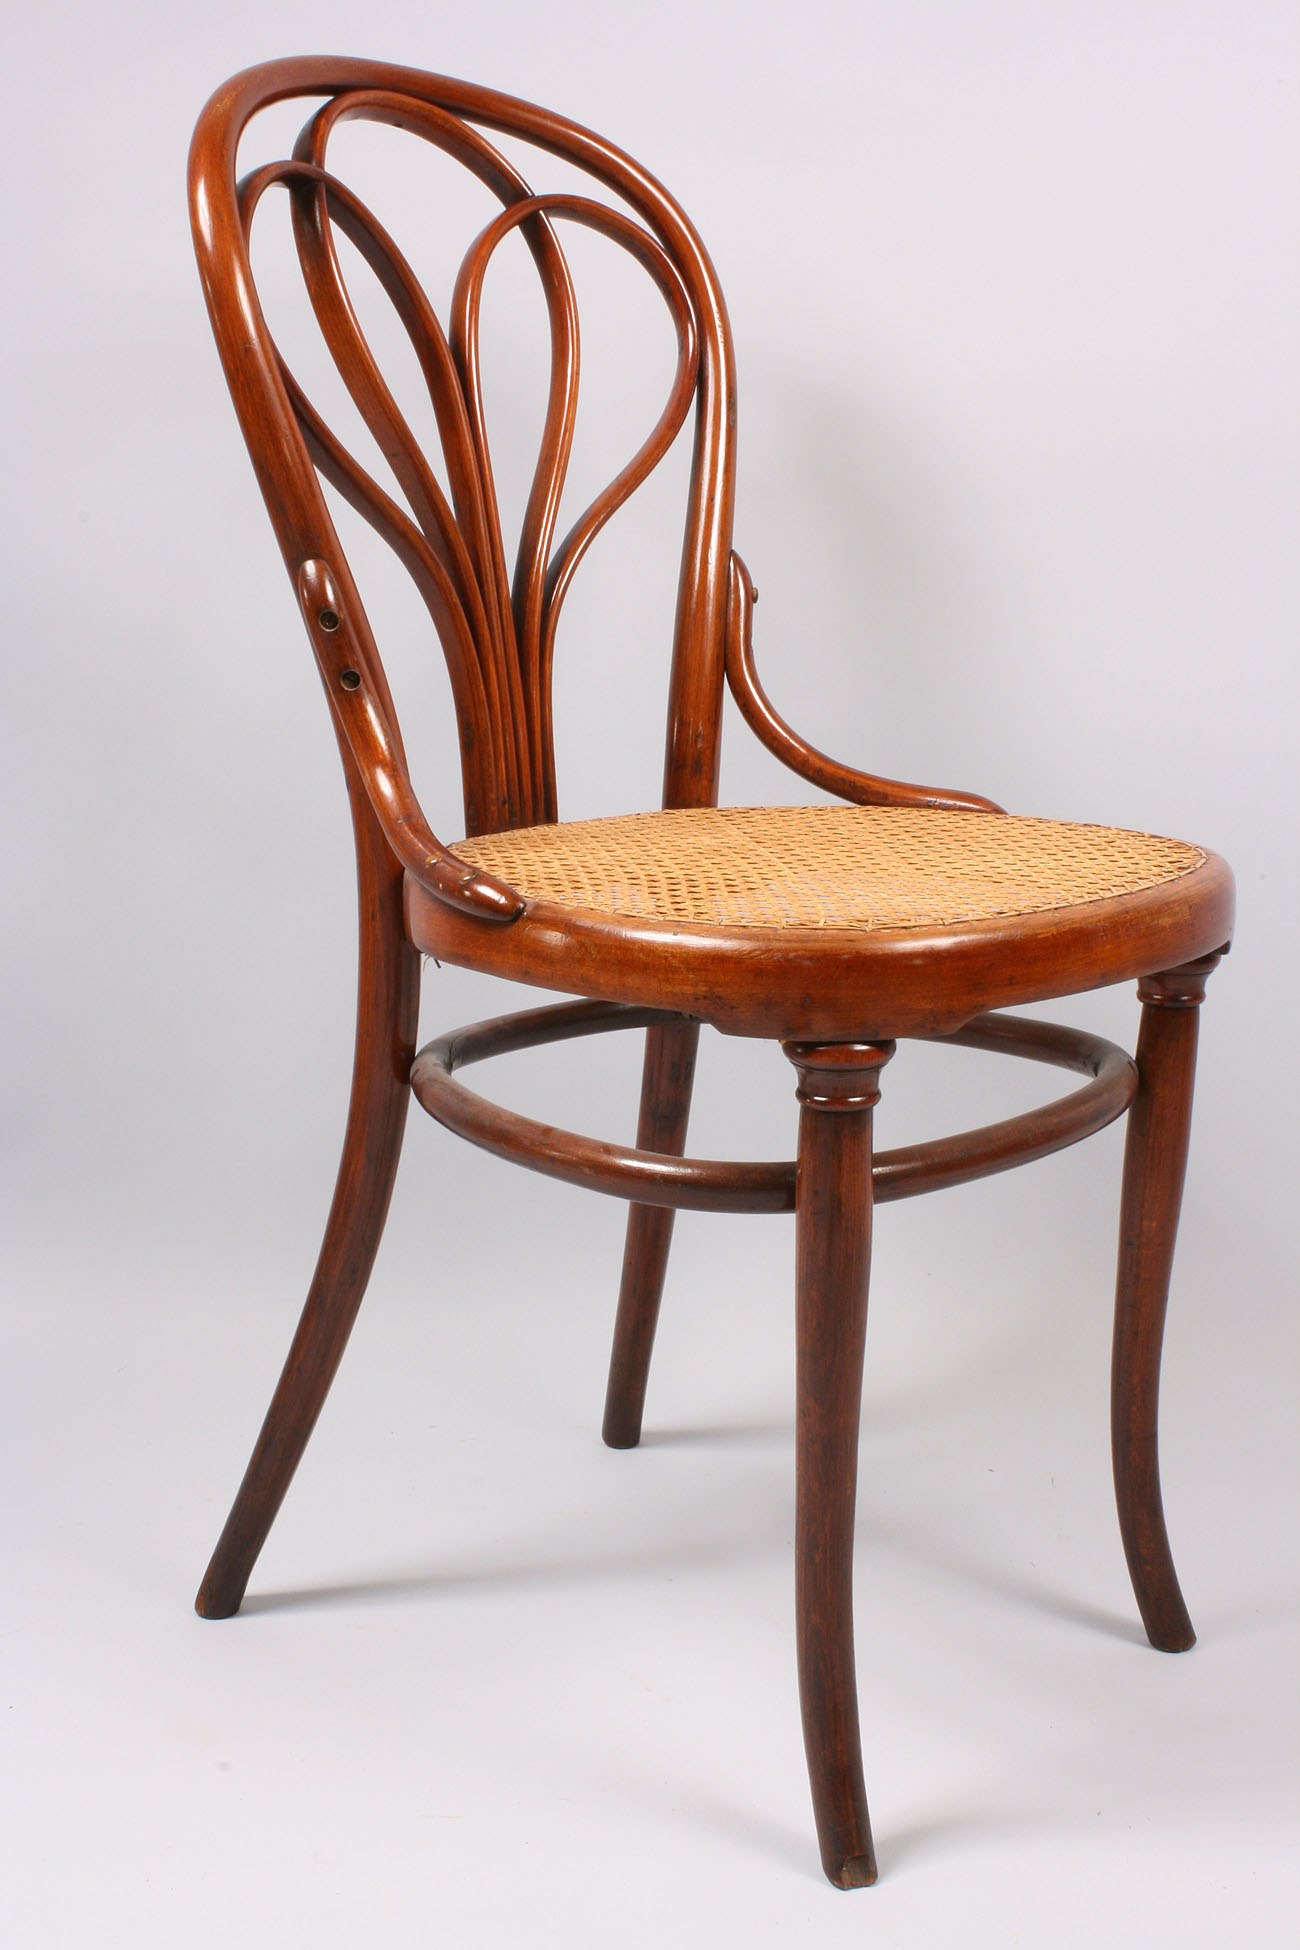 bent wood chair country kitchen table and chairs lot 144 thonet classic bentwood side model 31